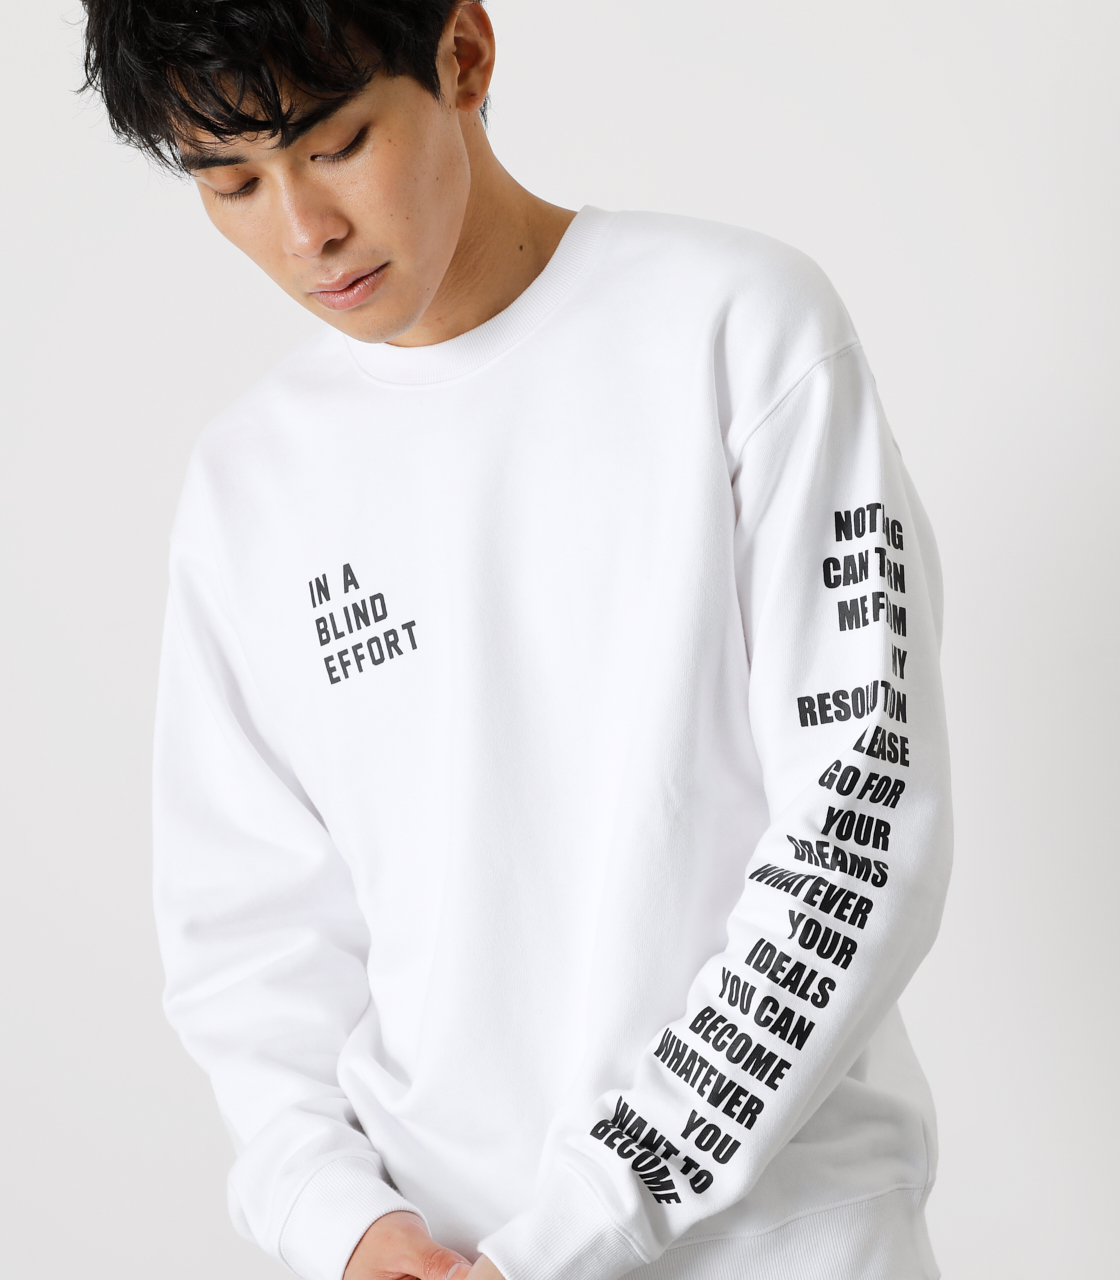 ONE ARM MESSAGE PULLOVER/ワンアームメッセージプルオーバー 詳細画像 WHT 2